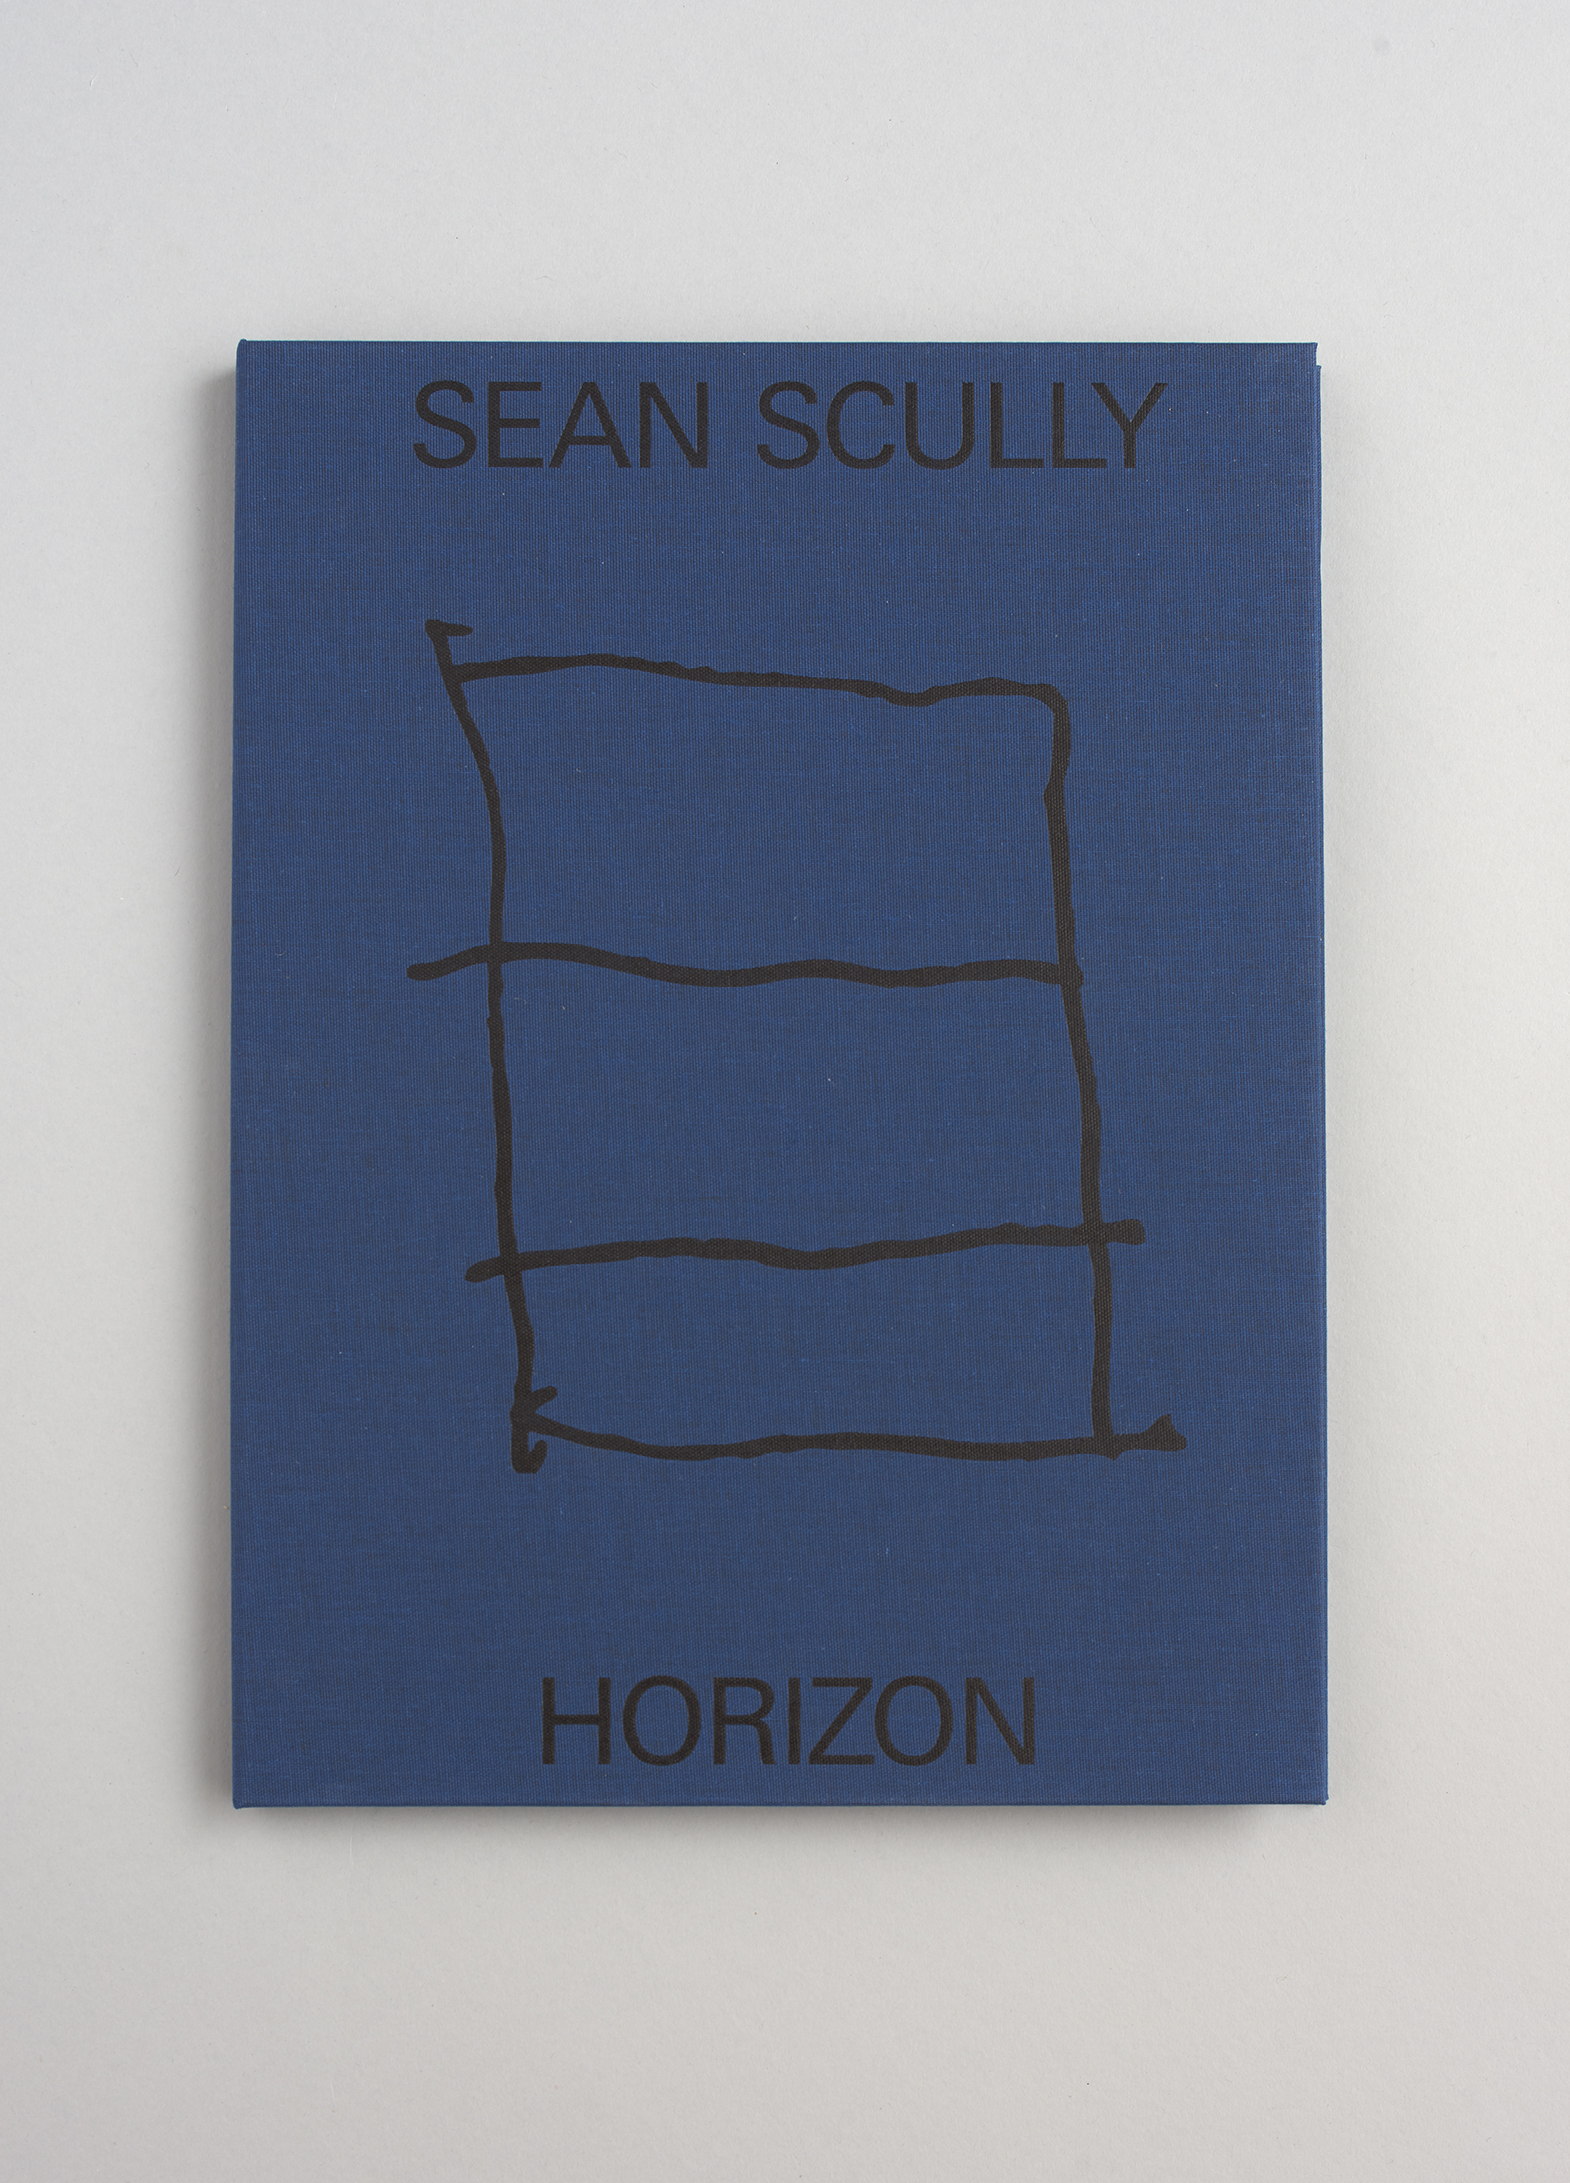 Sean Scully: Horizon